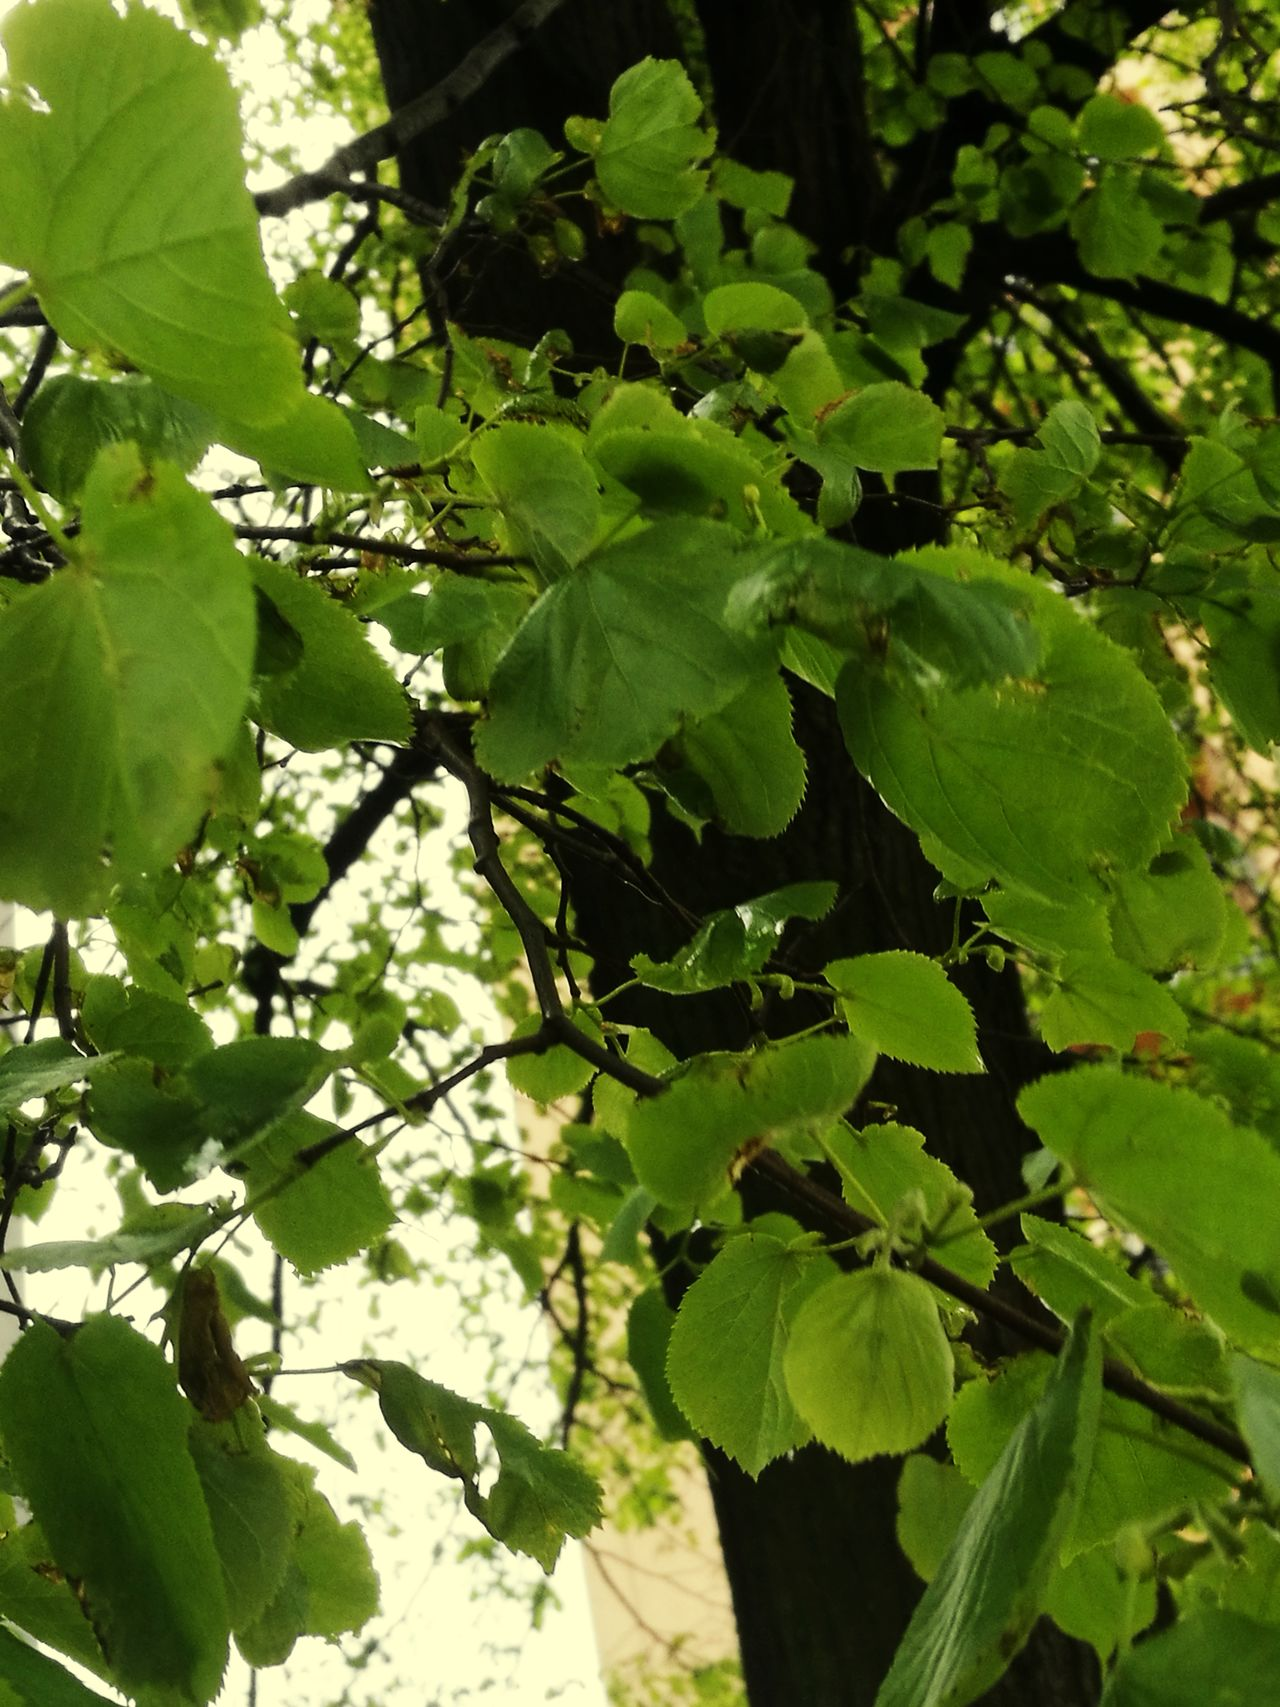 Green Color Tree Leaf Growth Nature Branch Outdoors Beauty In Nature No People Lush Foliage Day Sunlight Freshness Close-up Healthy Eating Water Sky